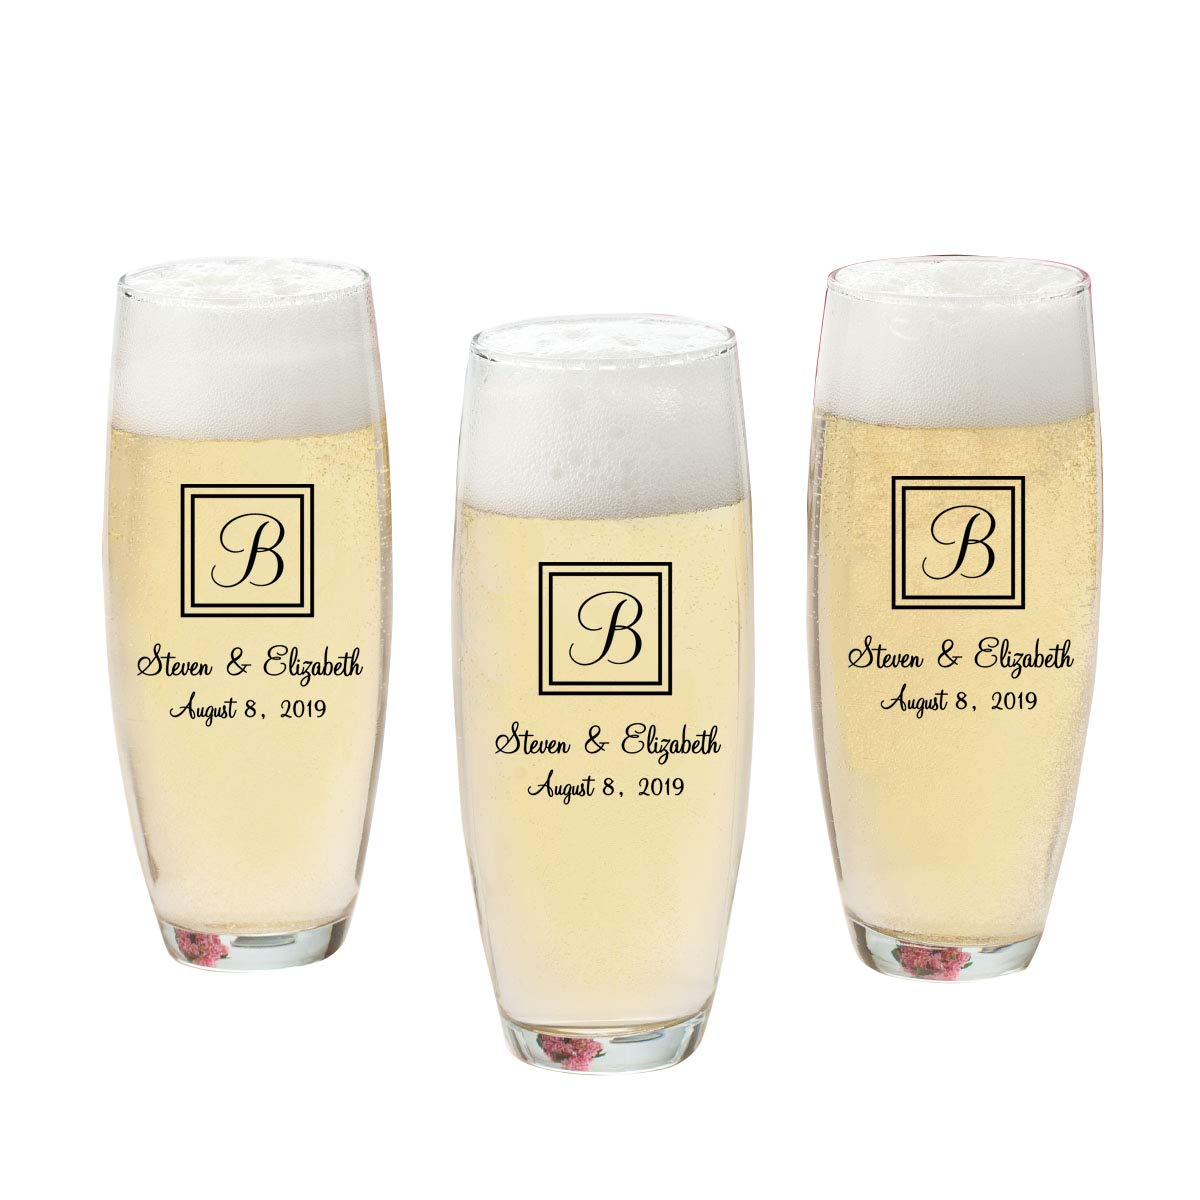 Personalized Stemless Champagne Flutes - (Set of 24) - Personalized Champagne Glasses - Monogrammed Champagne Flutes - X22